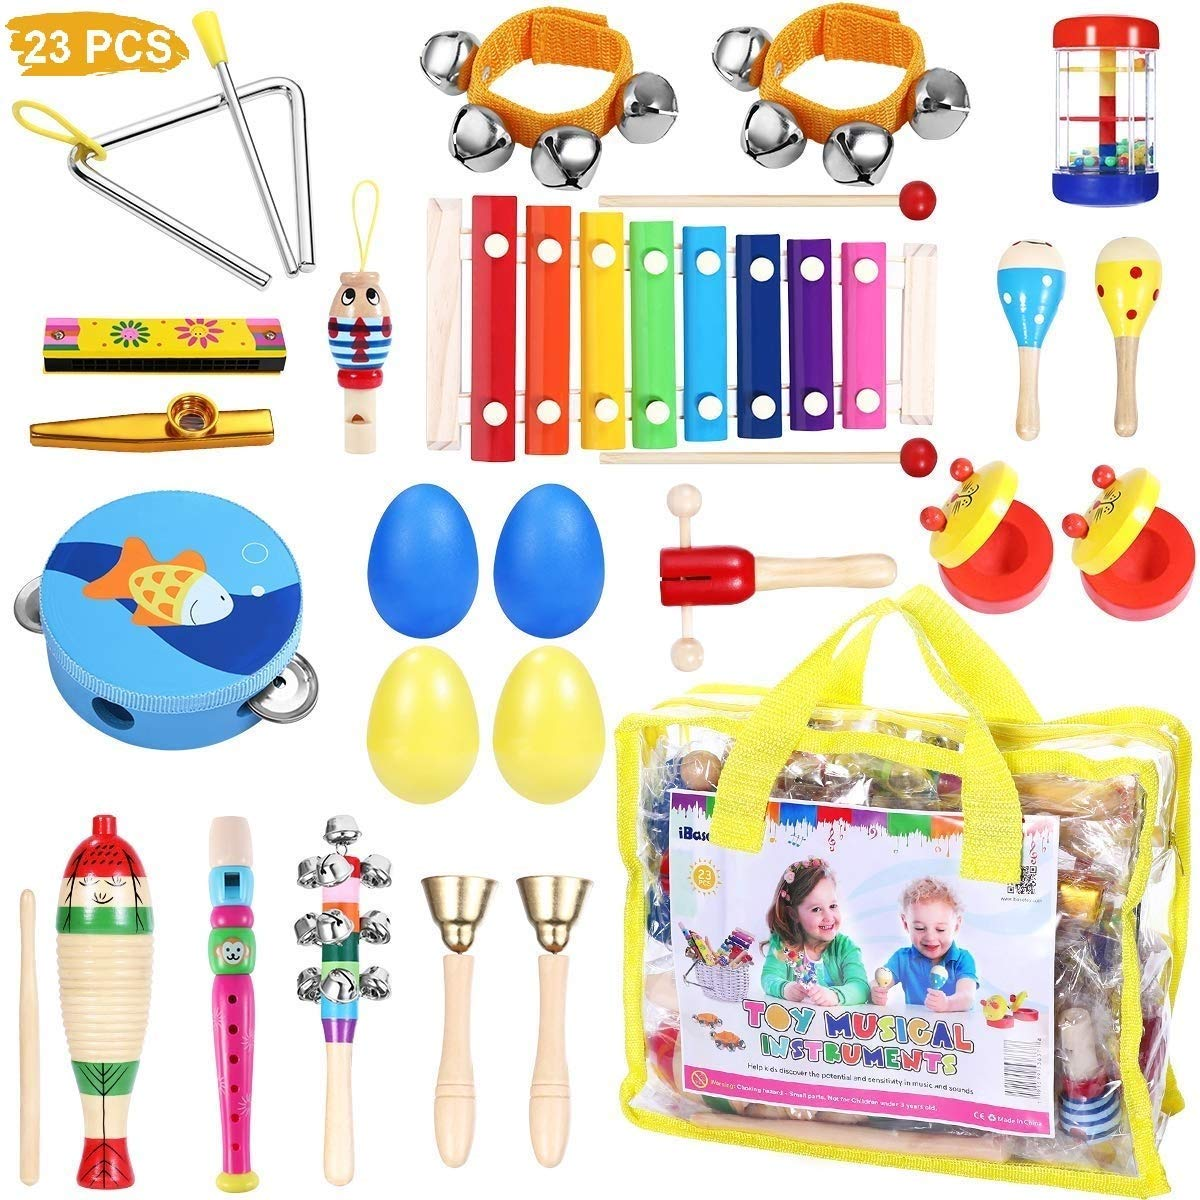 Toddler Musical Instruments - iBaseToy 23Pcs 16Types Wooden Percussion Instruments Tambourine Xylophone Toys for Kids